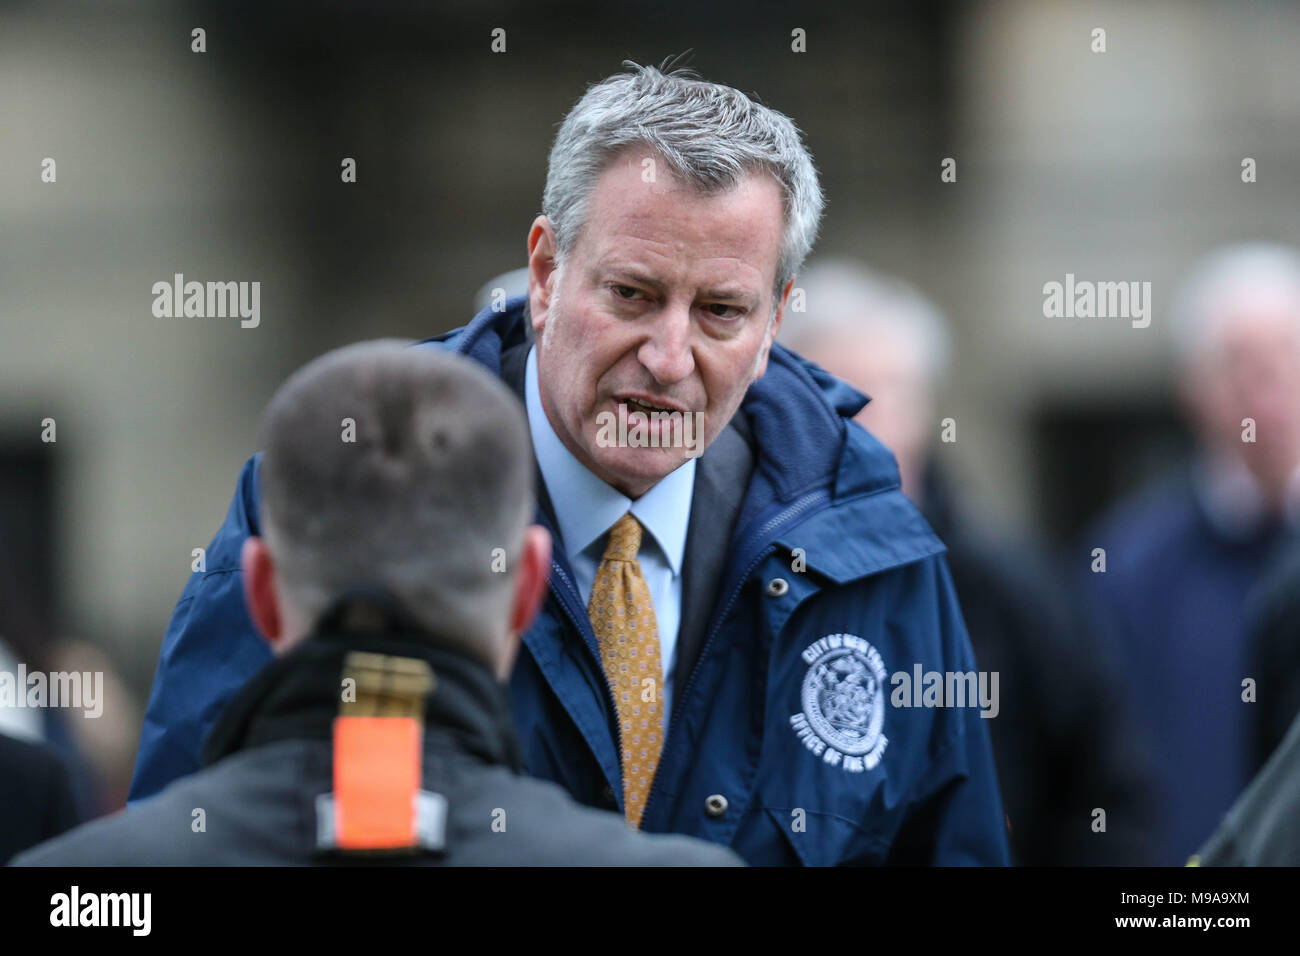 New York, New York, U.S. - Bill de Blasio Mayor of New York during a visit to the building that caught fire in Harlem on Manhattan Island in New York City on Friday afternoon, 23. The venue was used as a recording set for the director's ''Motherless Brooklyn'' Edward Norton. A firefighter died. Credit: William Volcov/ZUMA Wire/Alamy Live News - Stock Image